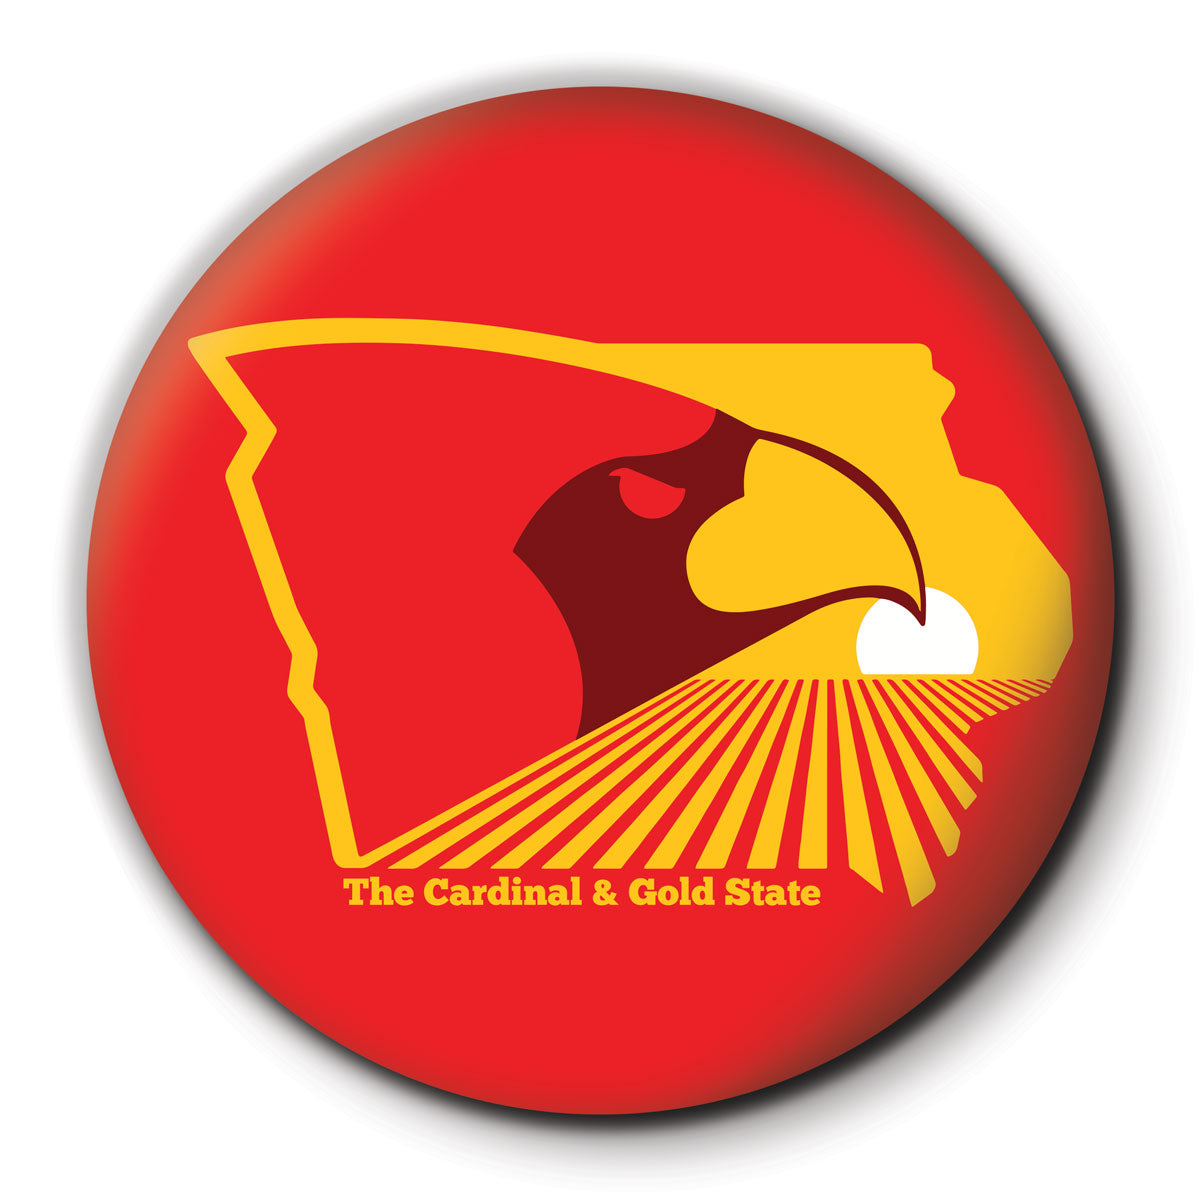 The Cardinal and Gold State Round Coaster